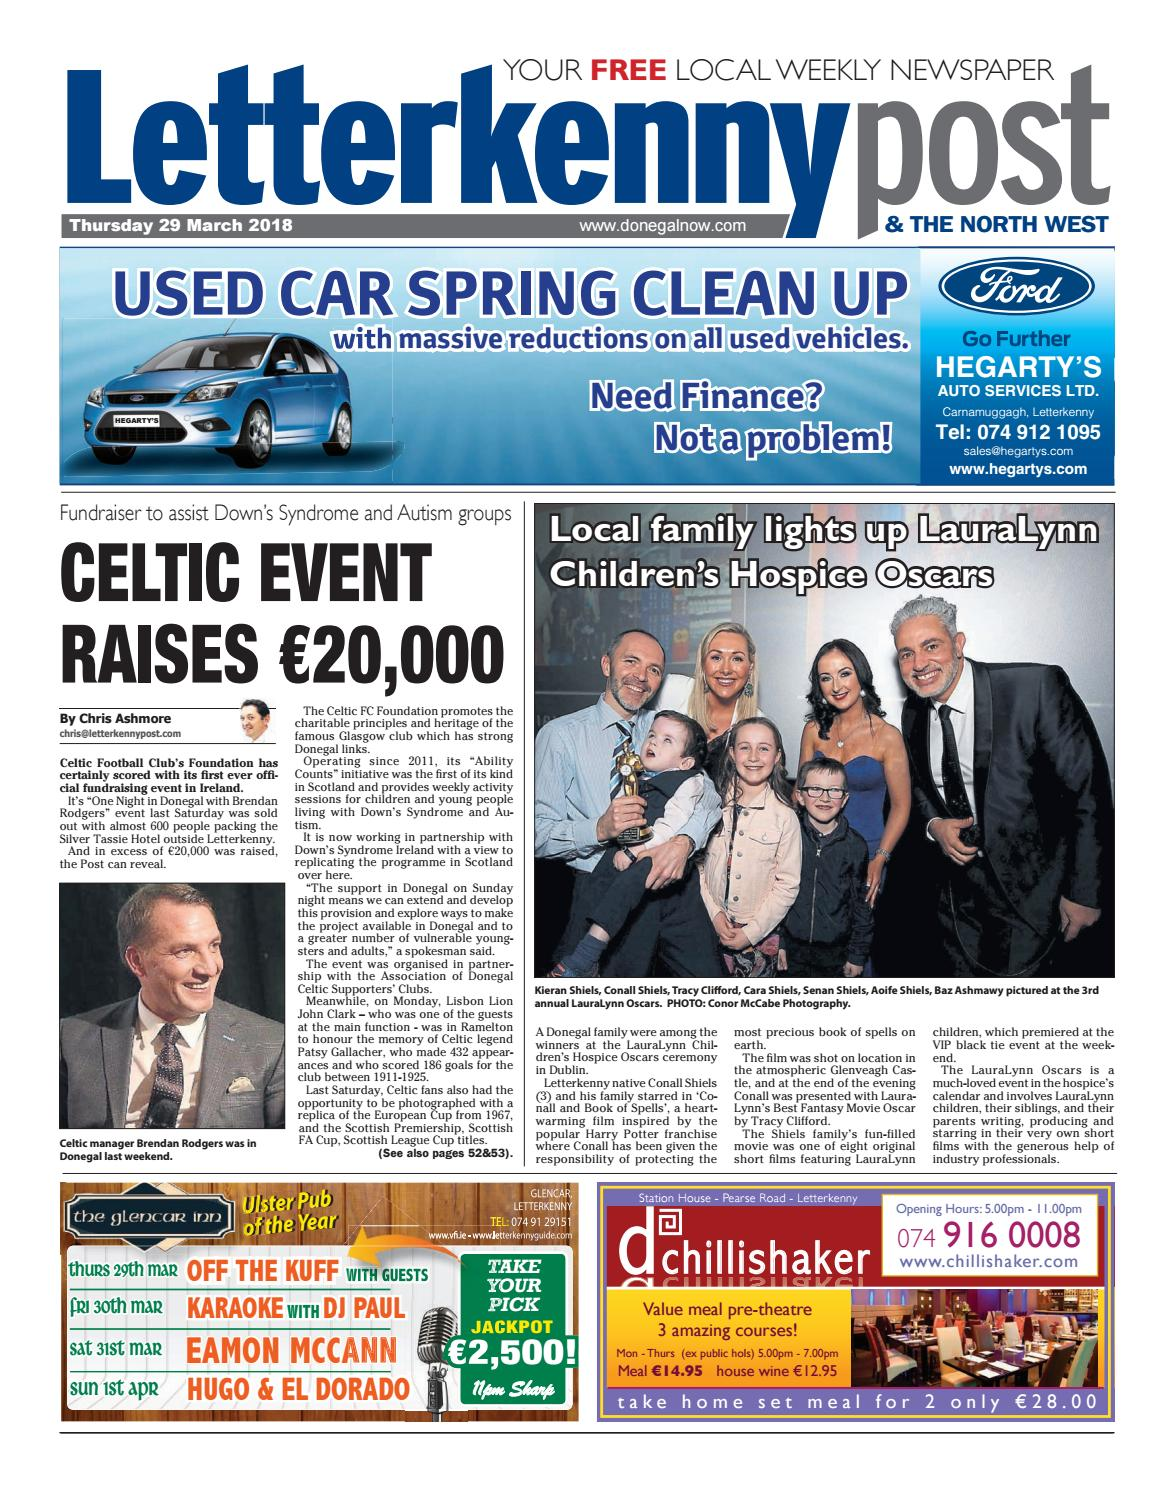 Letterkenny post 29 03 2018 by River Media Newspapers - issuu